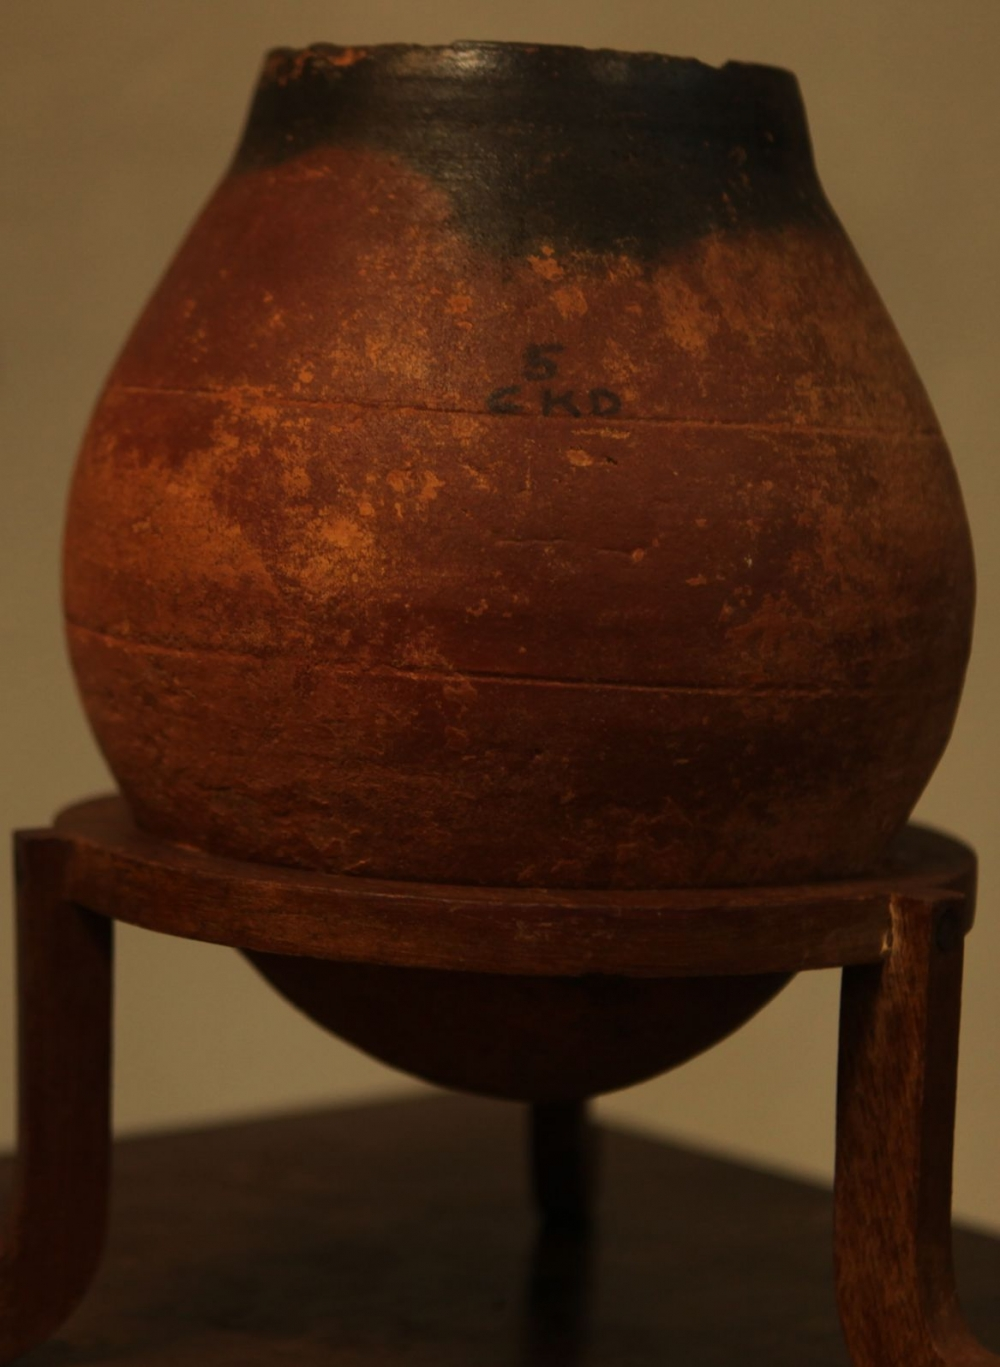 Black and Red Ware, Chekkad, kept at the Shaktan Tampuran Museum, Thrissur Courtesy: Jaseera C.M.2018